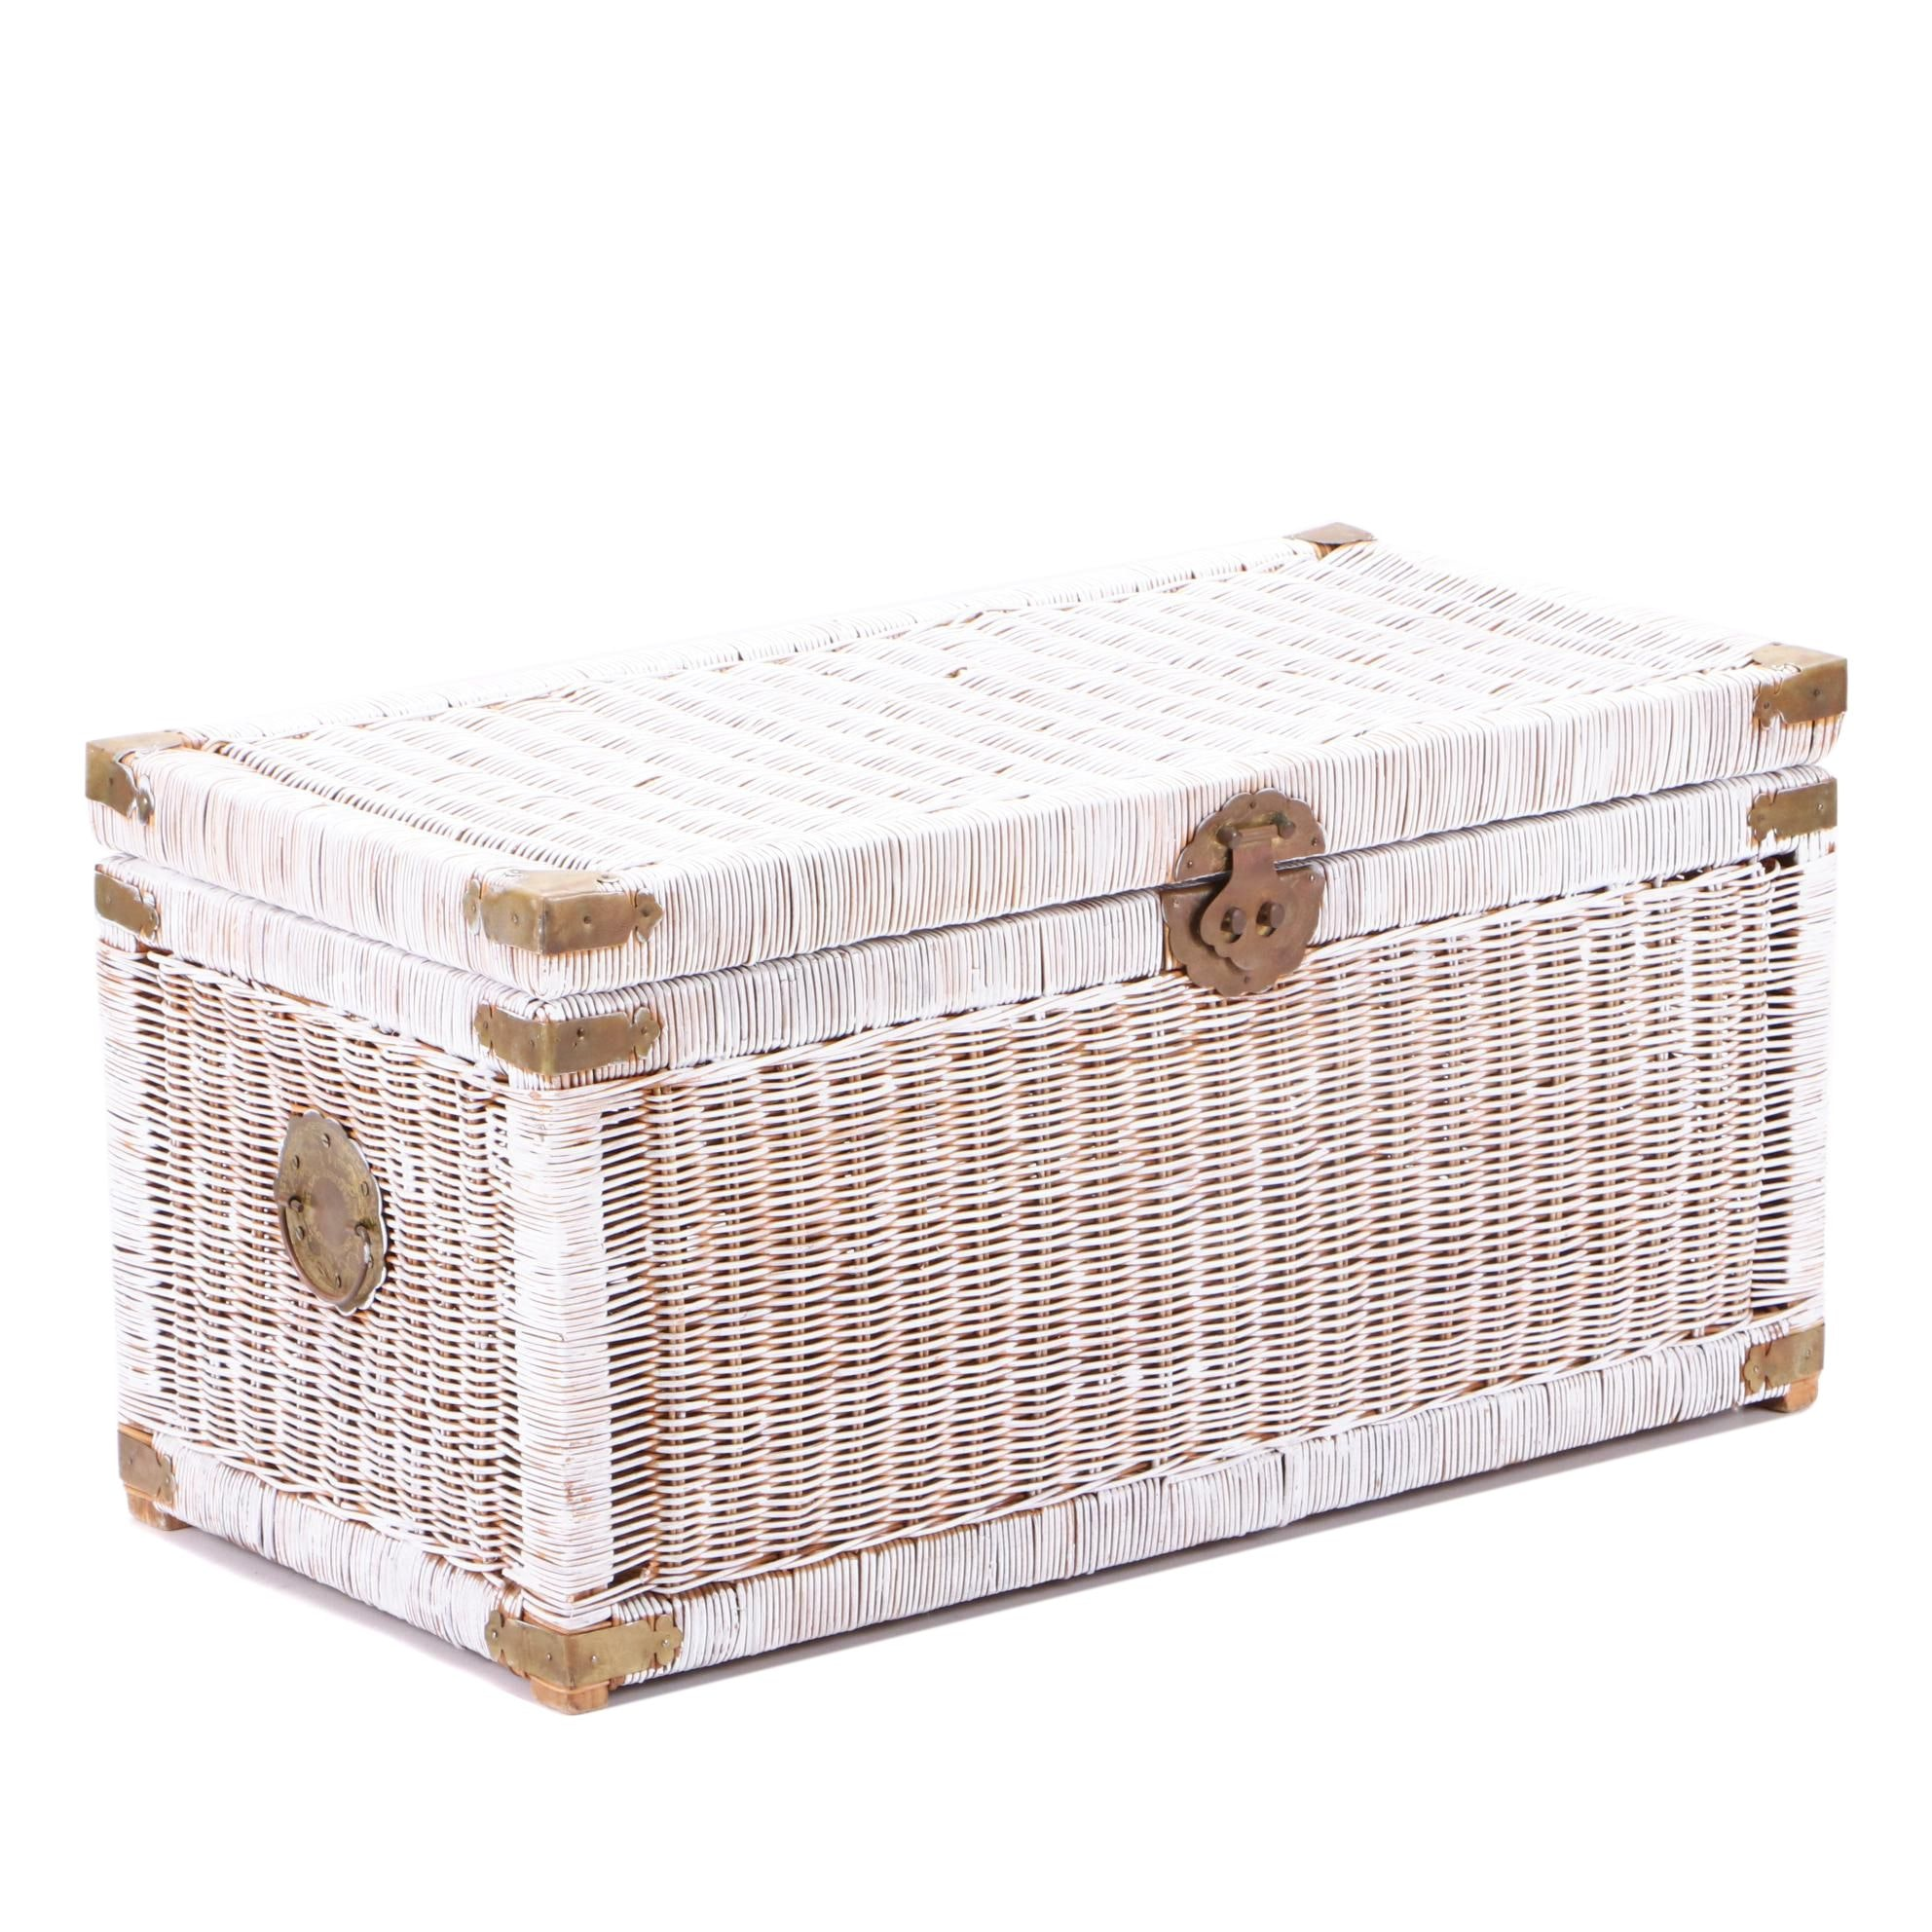 Painted Wicker Weave Storage Trunk, Late 20th Century